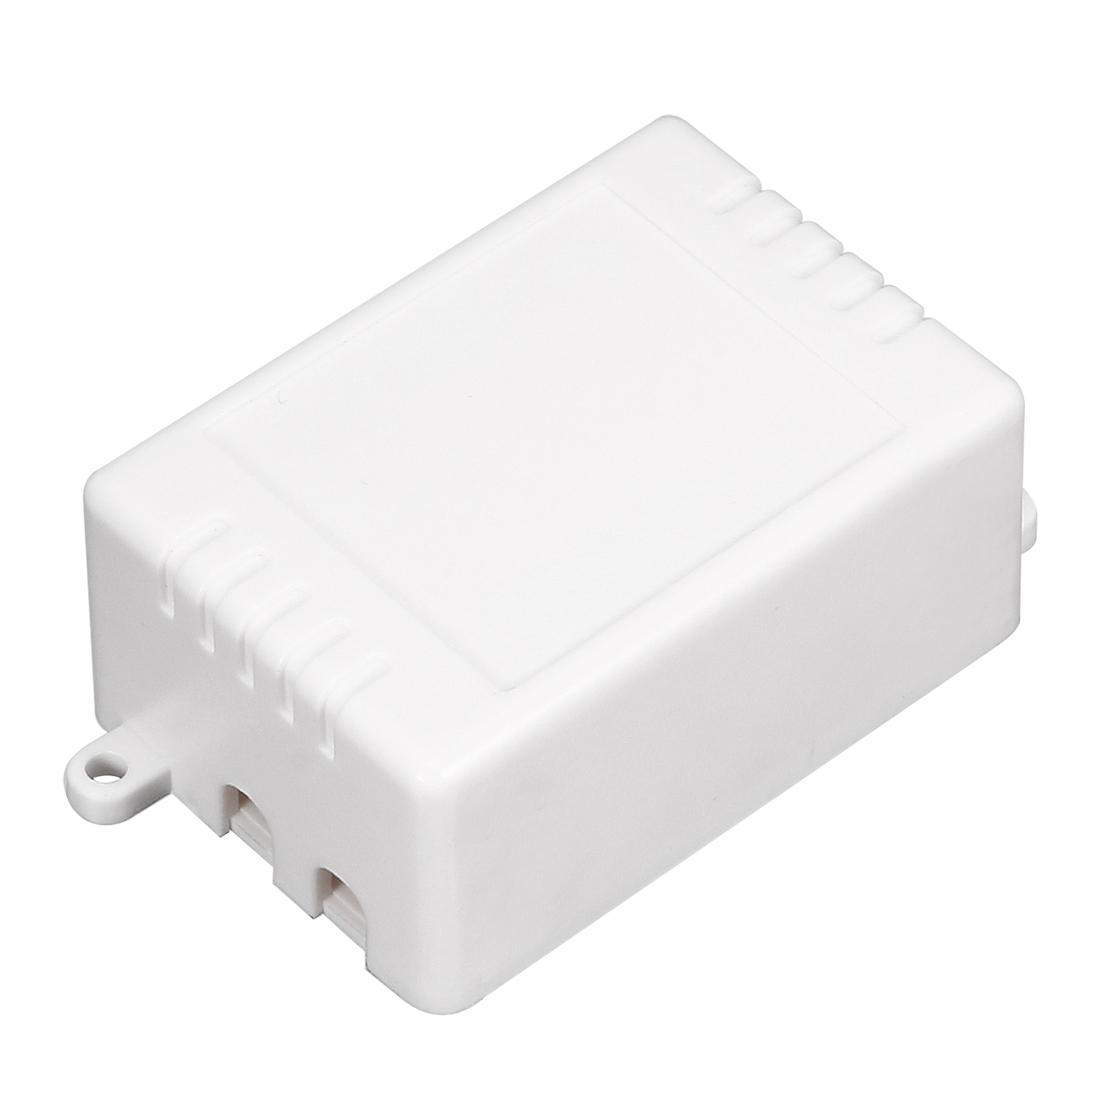 White 50 x 35 x 22mm Plastic Case Junction Box for LED Driver Module Sensors